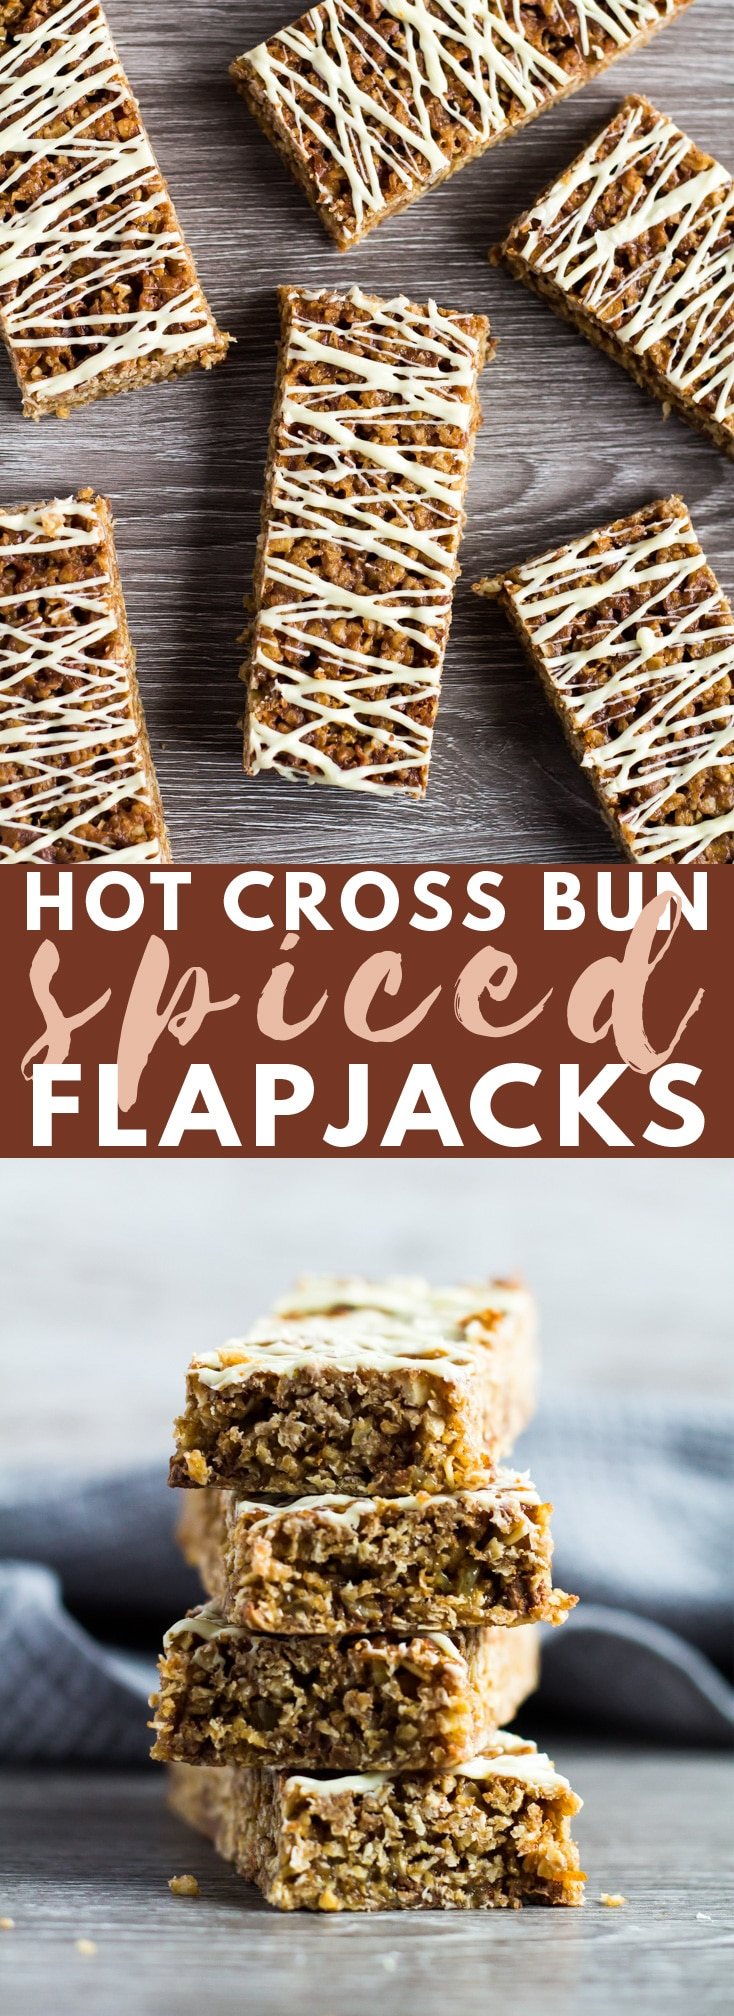 Hot Cross Bun Spiced Flapjacks - These deliciously chewy flapjacks taste just like hot cross buns. They're thick and gooey, perfectly spiced, and topped with a drizzle of white chocolate!